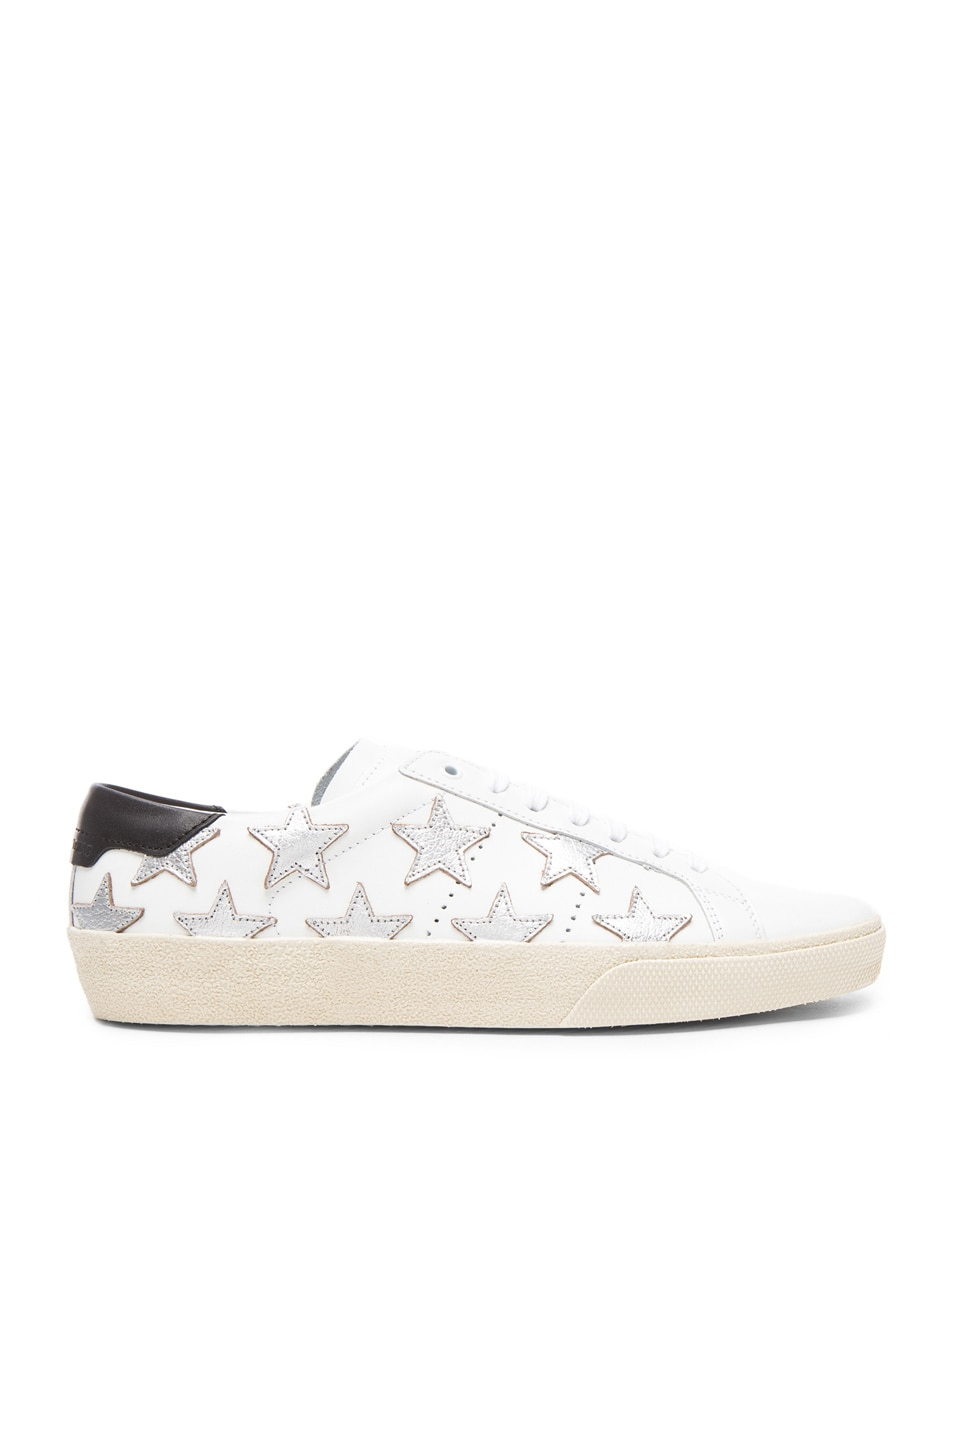 Court Classics star sneakers - White Saint Laurent ET2gu0